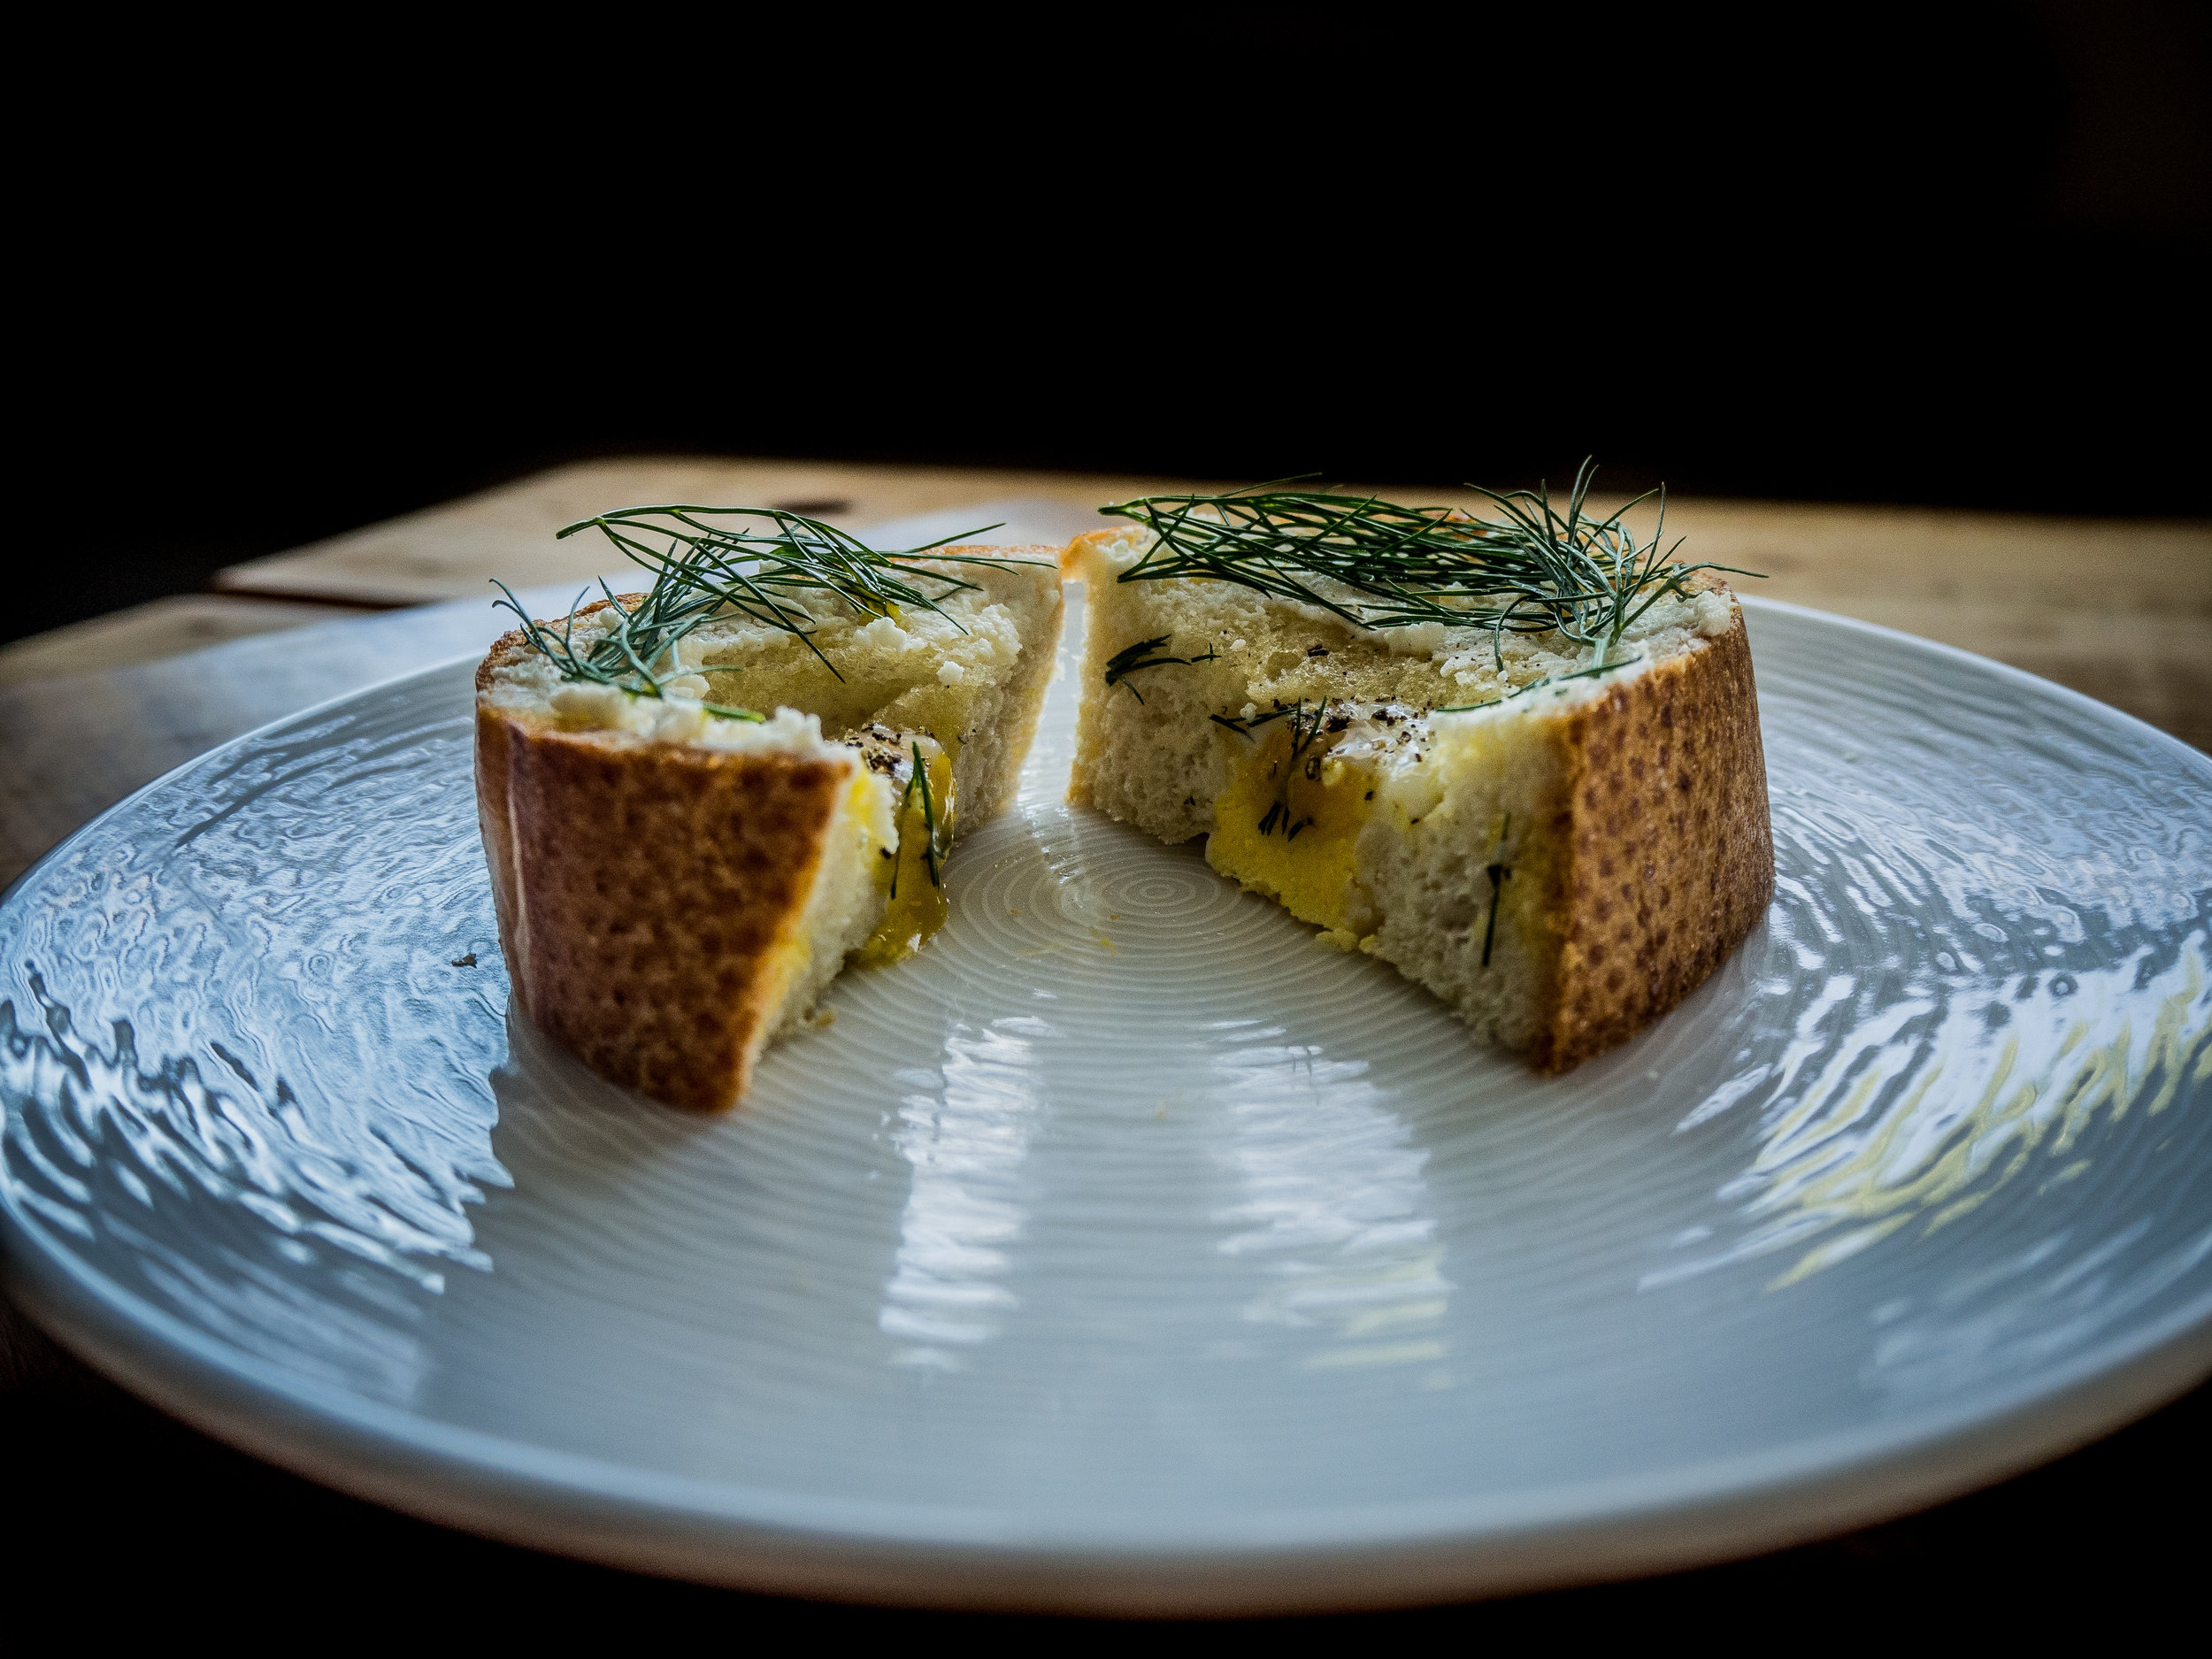 The yokes should be slightly runny, while the white of the egg is firm. The dill will add a fresh, light pop of flavor to each bite.